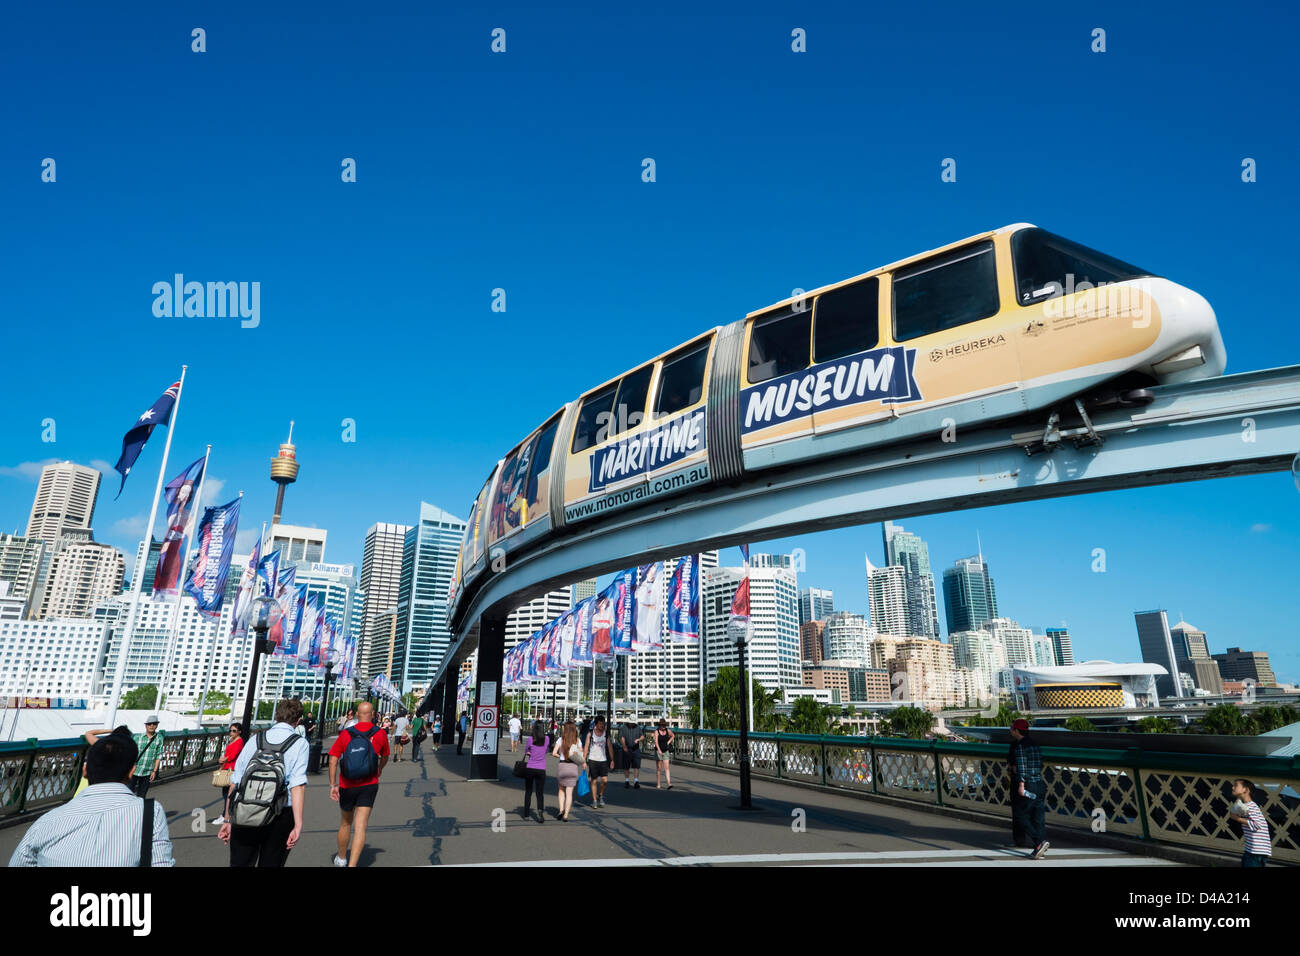 En train monorail Darling Bay Sydney Australie Photo Stock